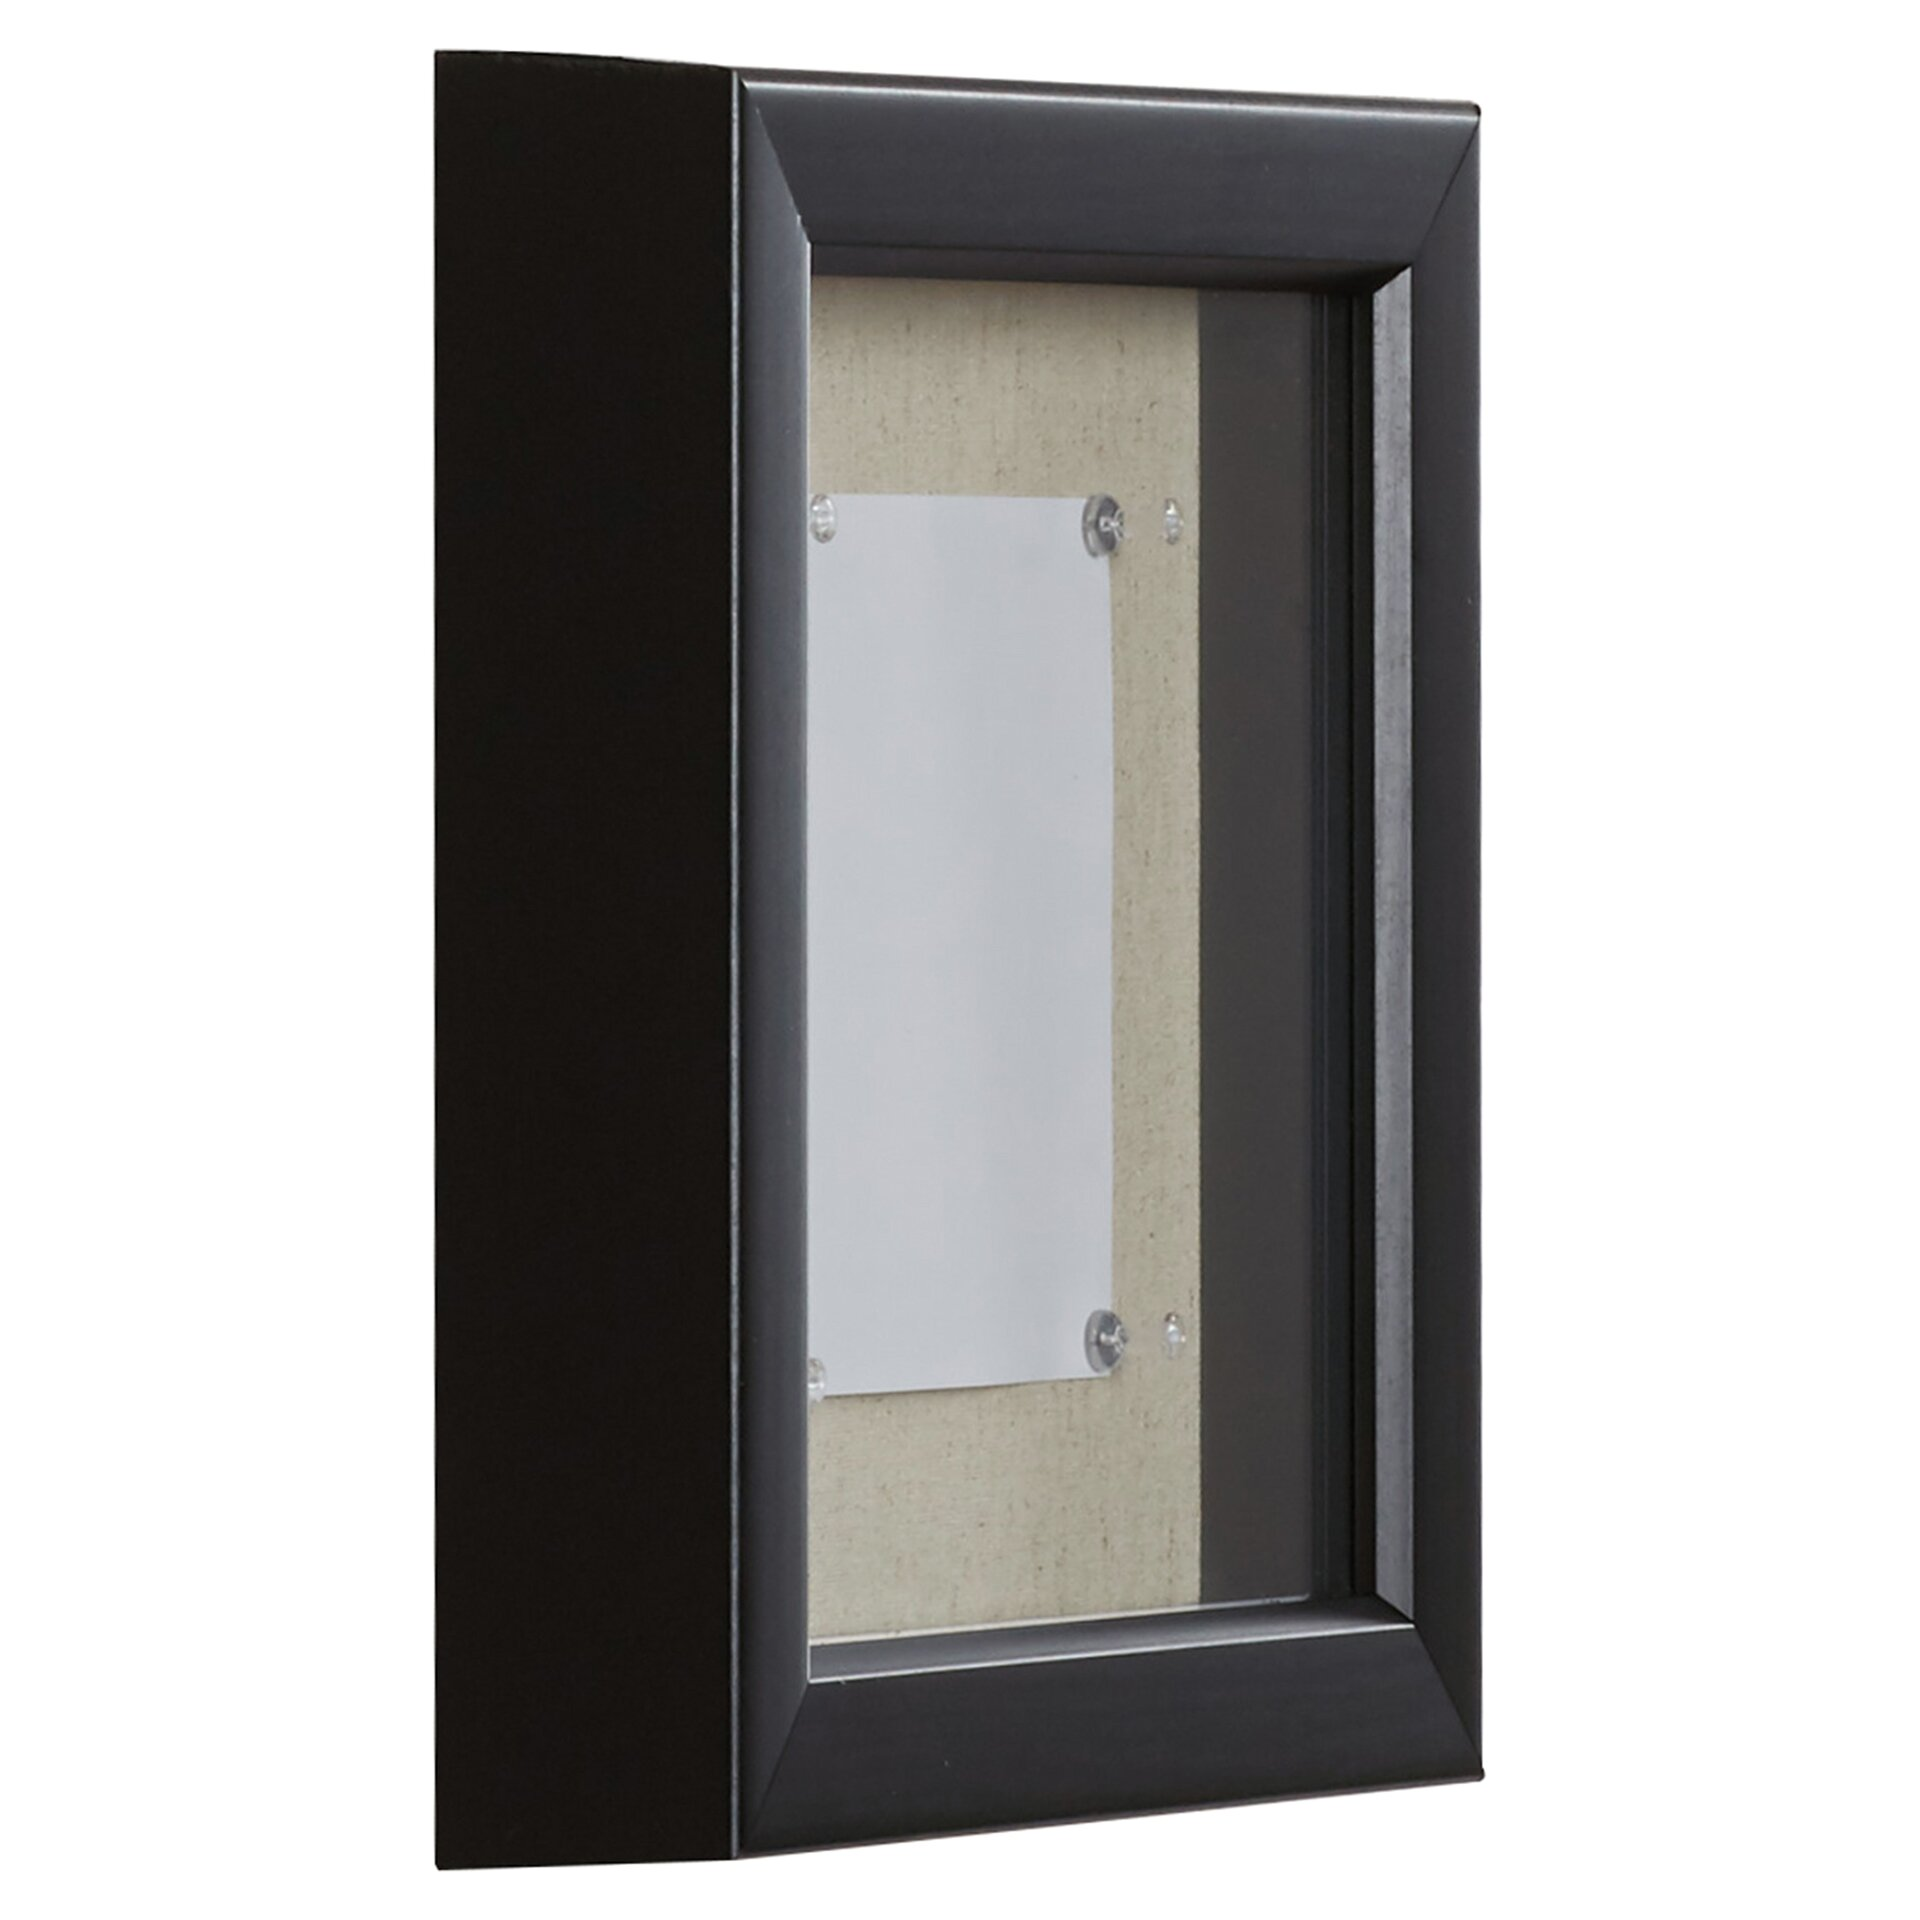 charlton home barker linen inner display board shadow box picture frame